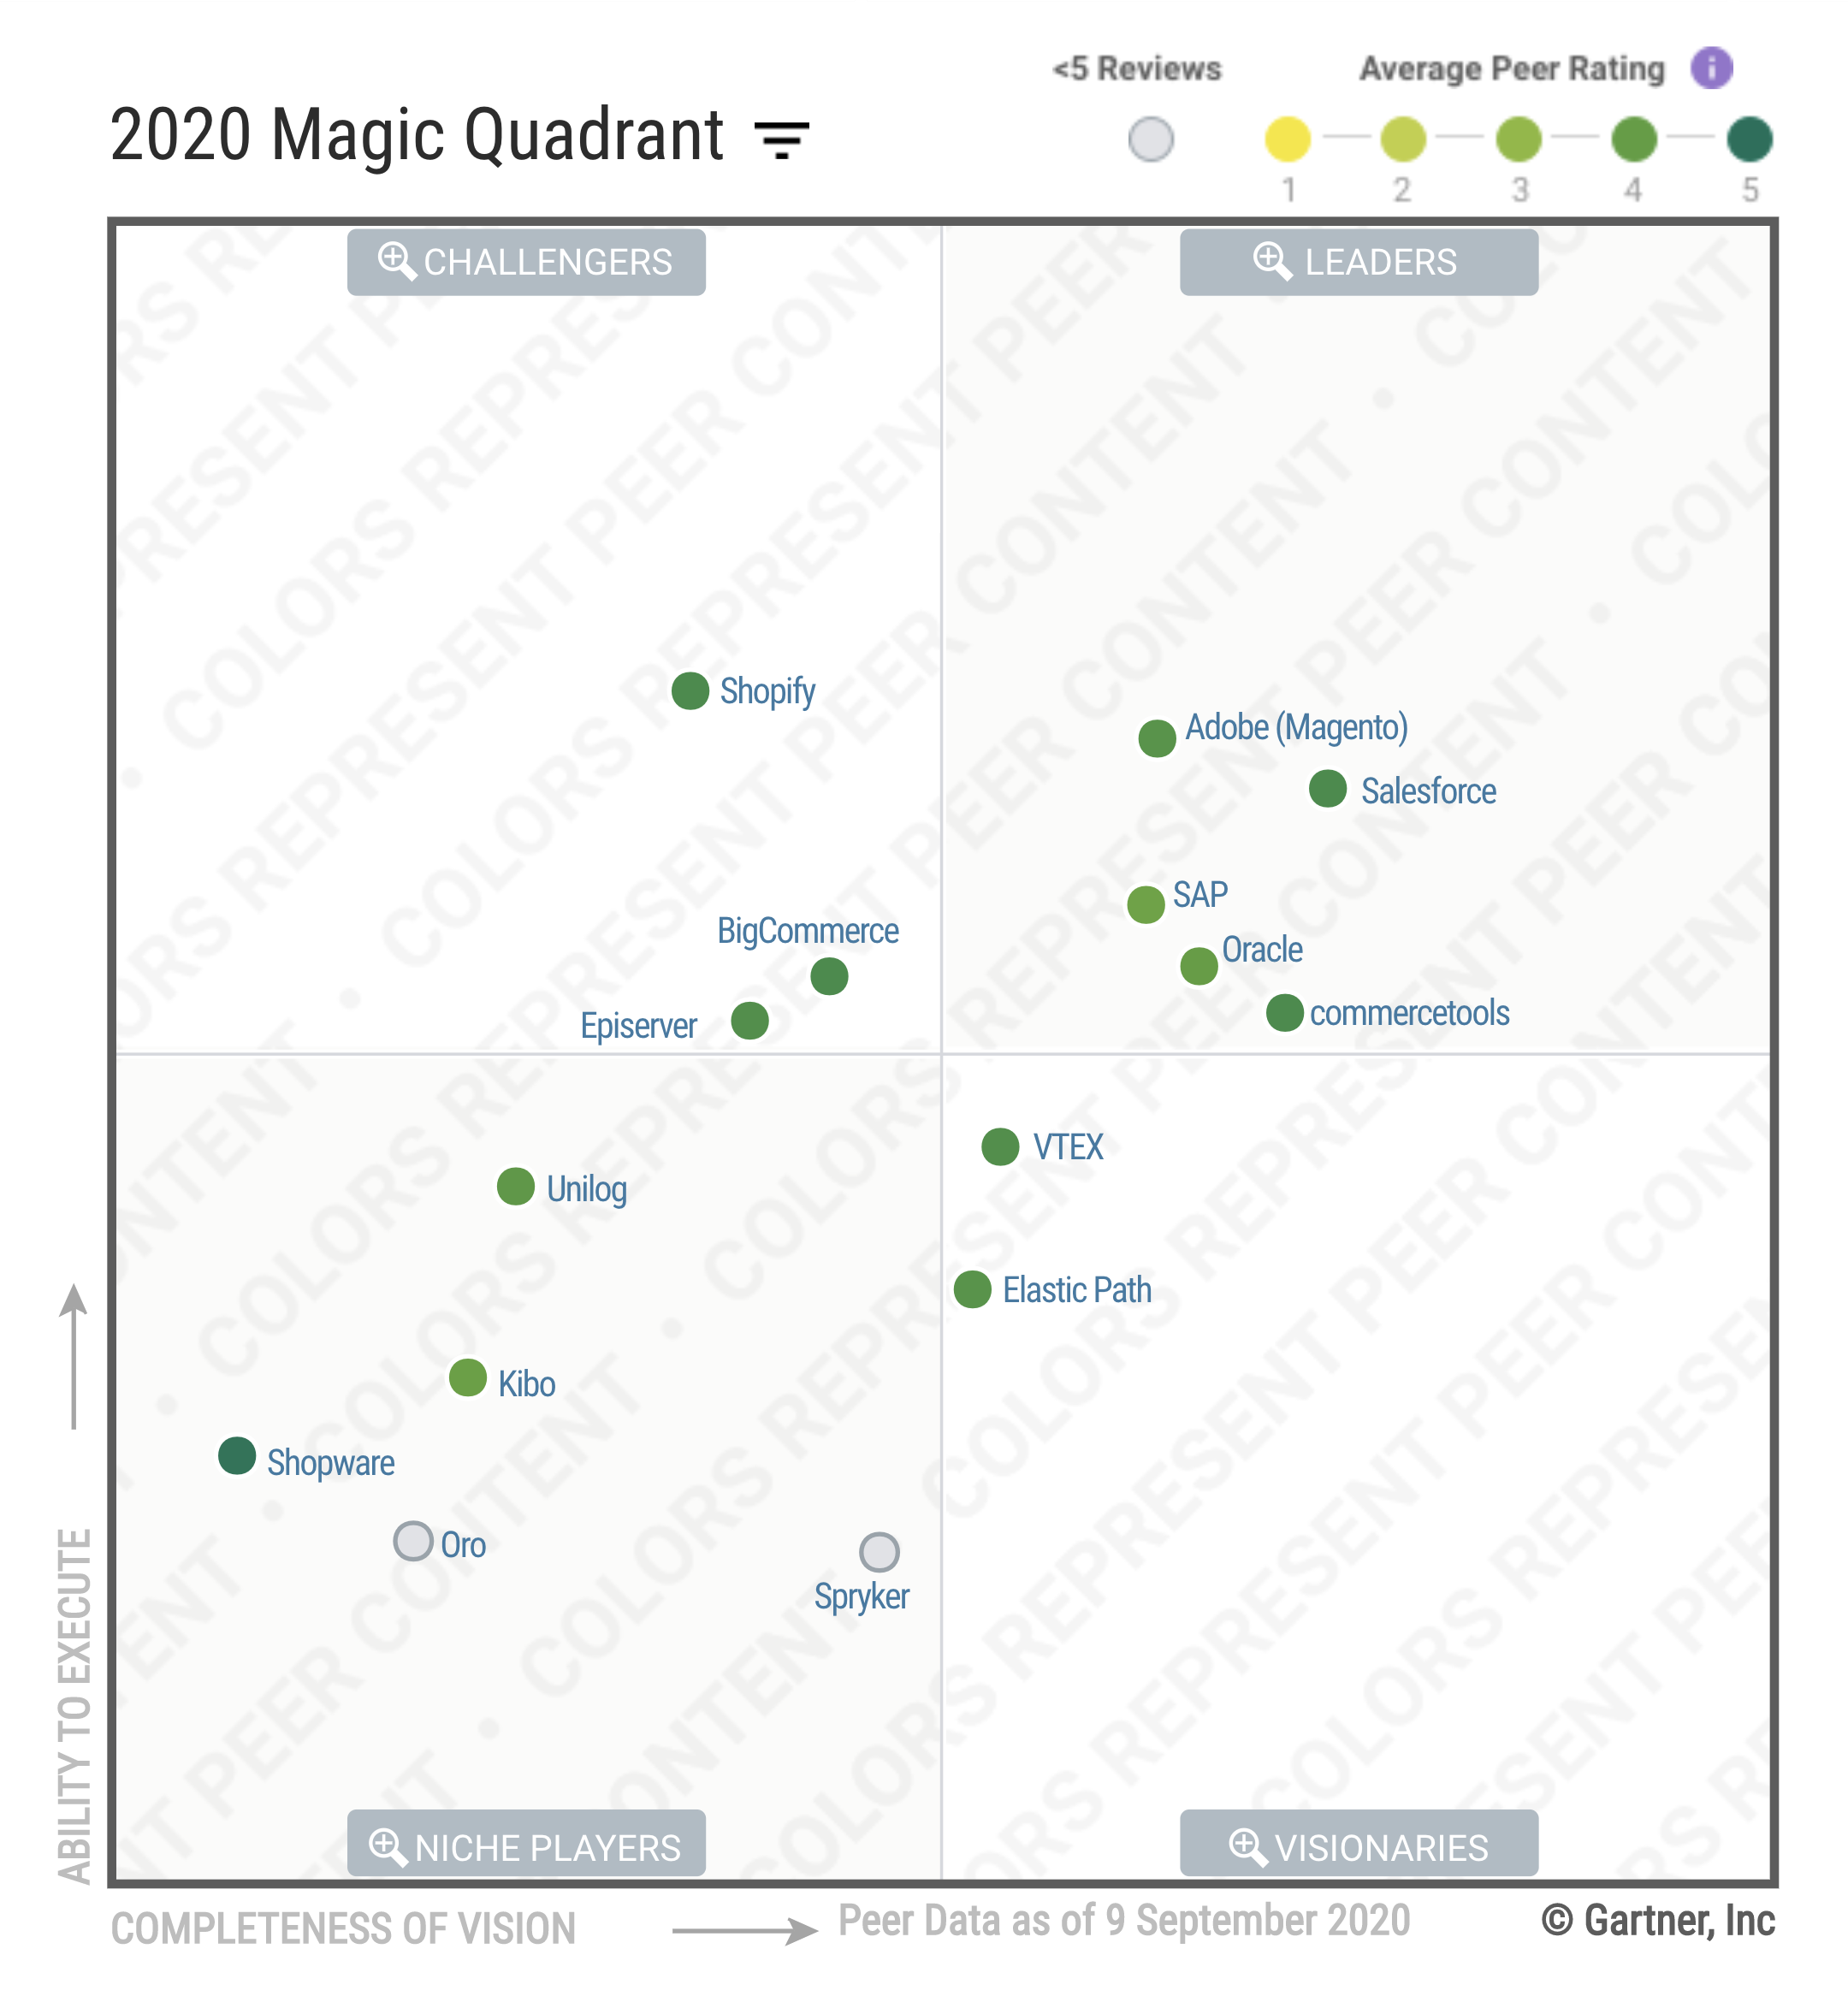 Gartner_Magic_Quadrant-2020-User-Reviews